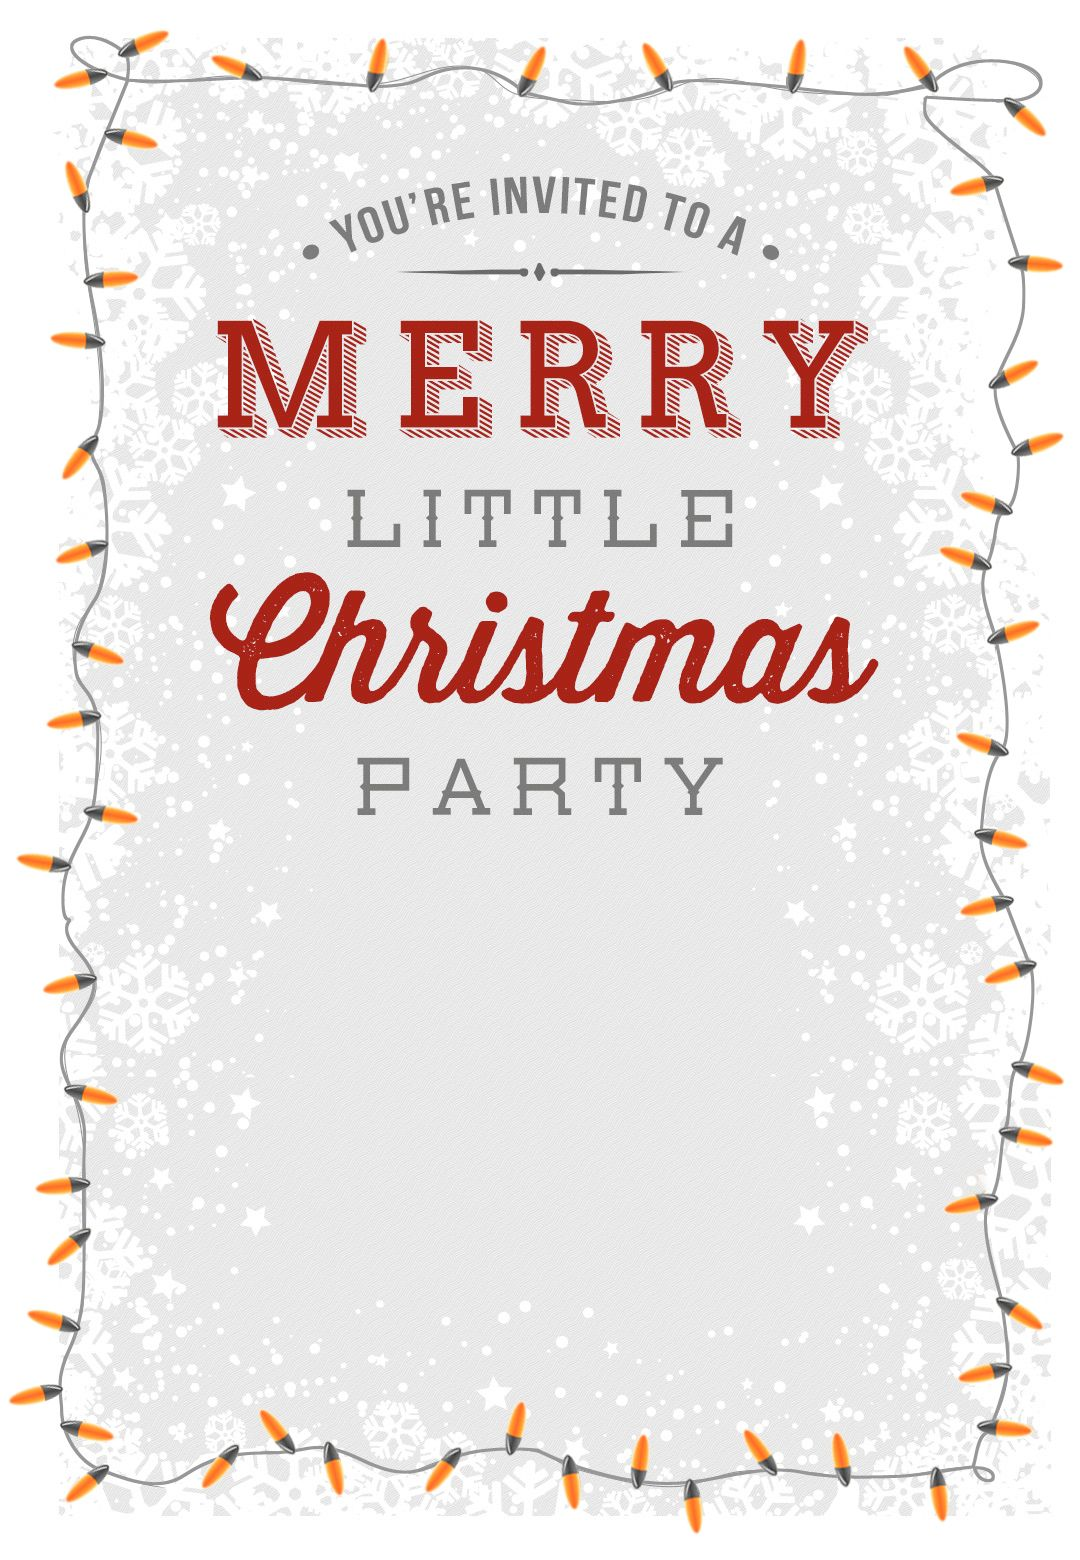 A Merry Little Party  Free Printable Christmas Invitation